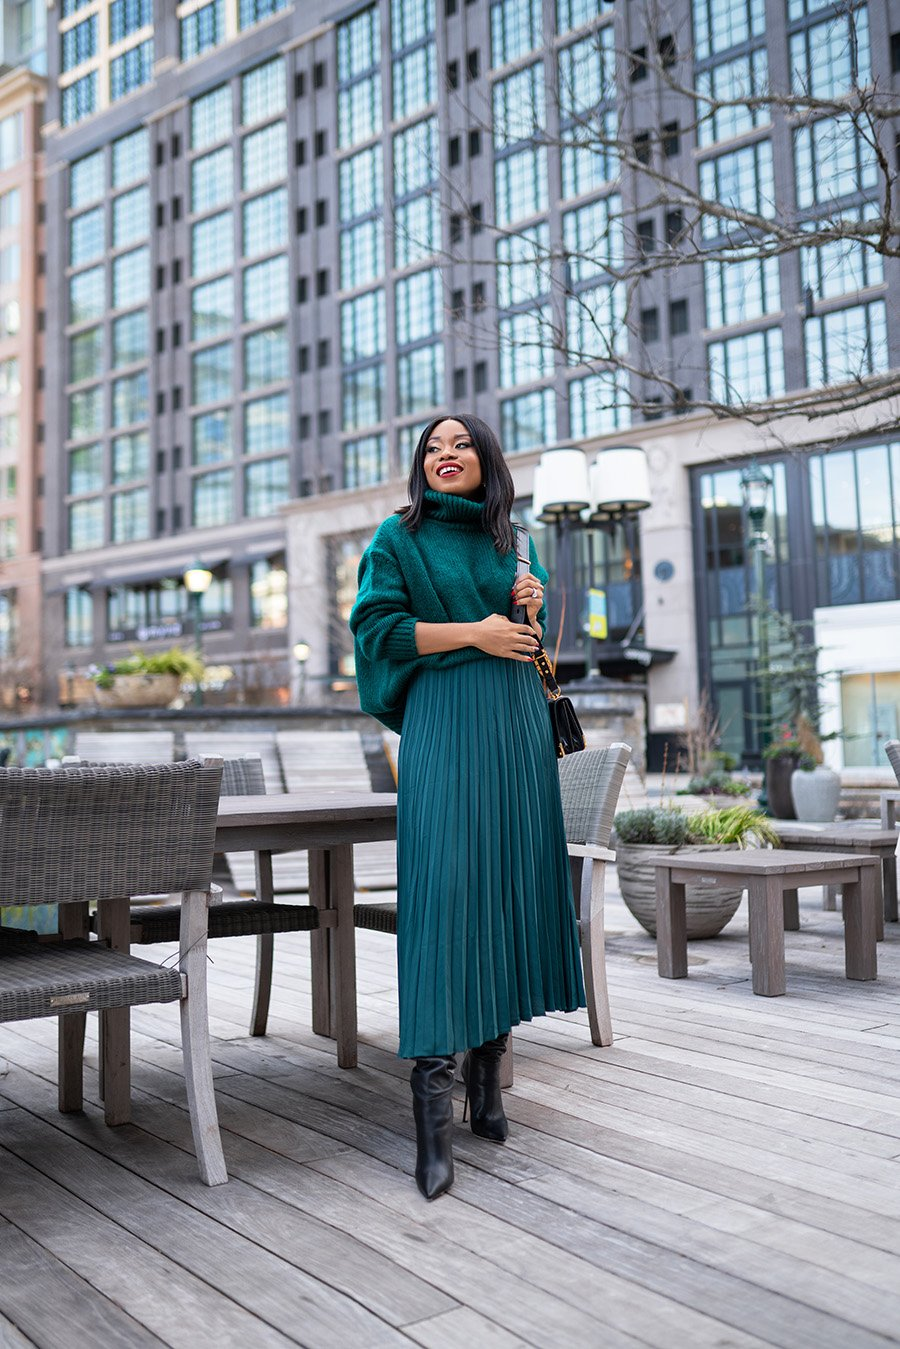 stella-adewunmi-of-jadore-fashion-blog-shares-how-to-wear-pleated-skirt-for-spring-work